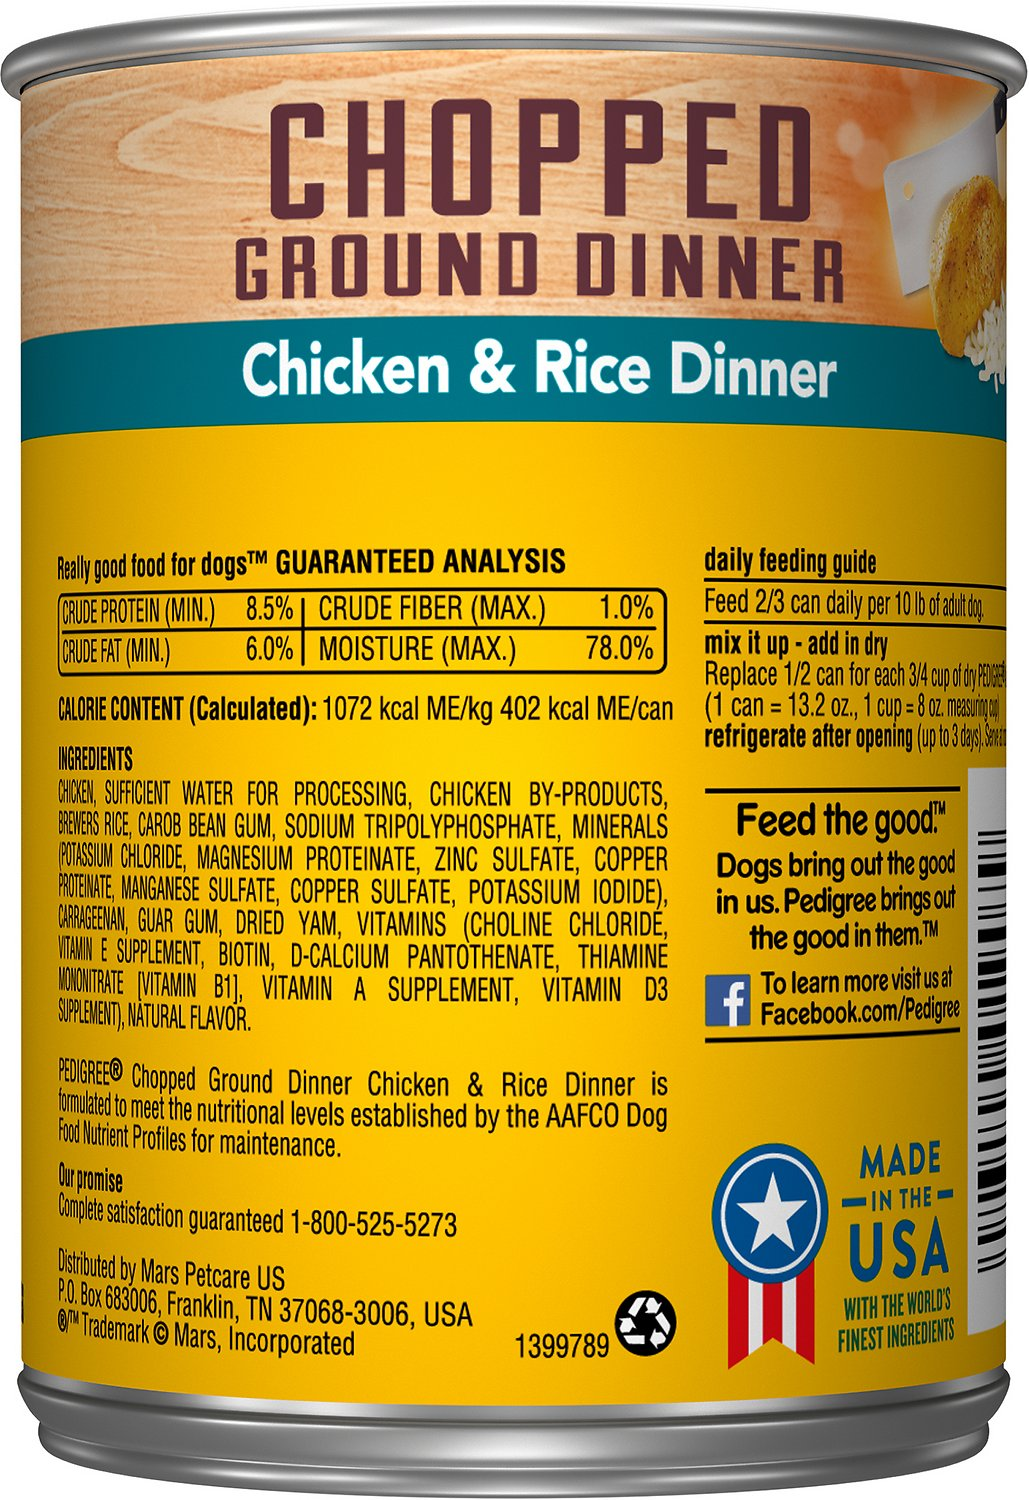 Pedigree Chopped Ground Dinner Chicken Rice Dinner Canned Dog Food